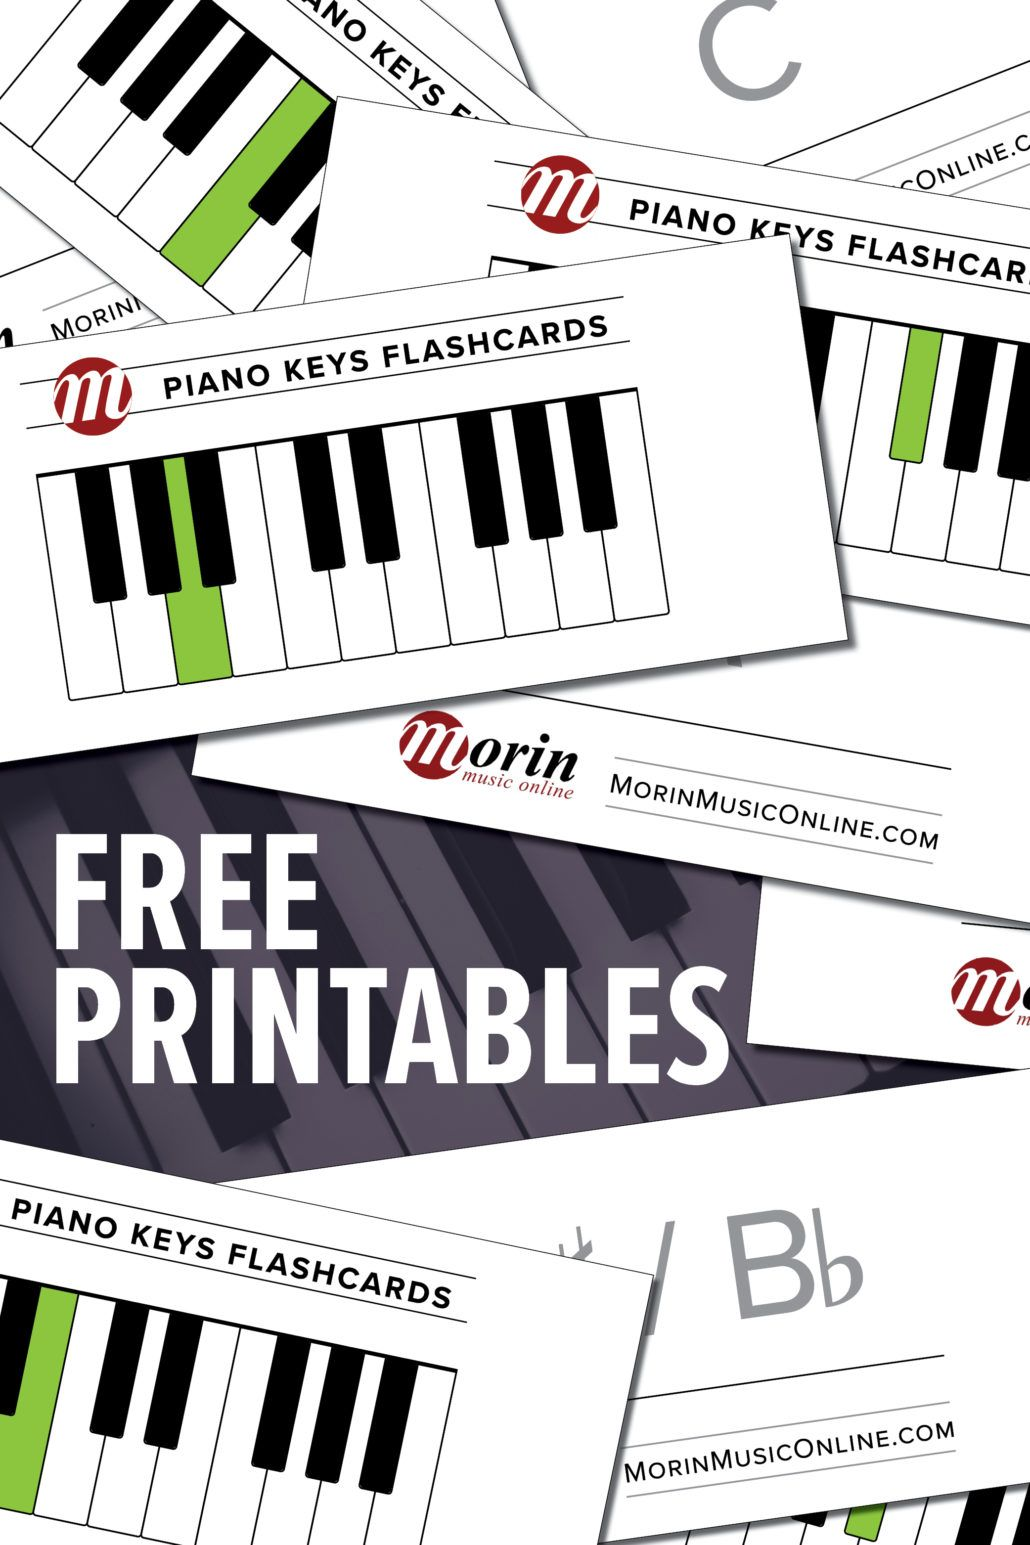 Piano Key Flashcards A Fun Way To Learn Piano Keys Download Print Our Free Flashc Piano Lessons For Kids Piano Lessons Printables Piano Teacher Resources [ 1545 x 1030 Pixel ]